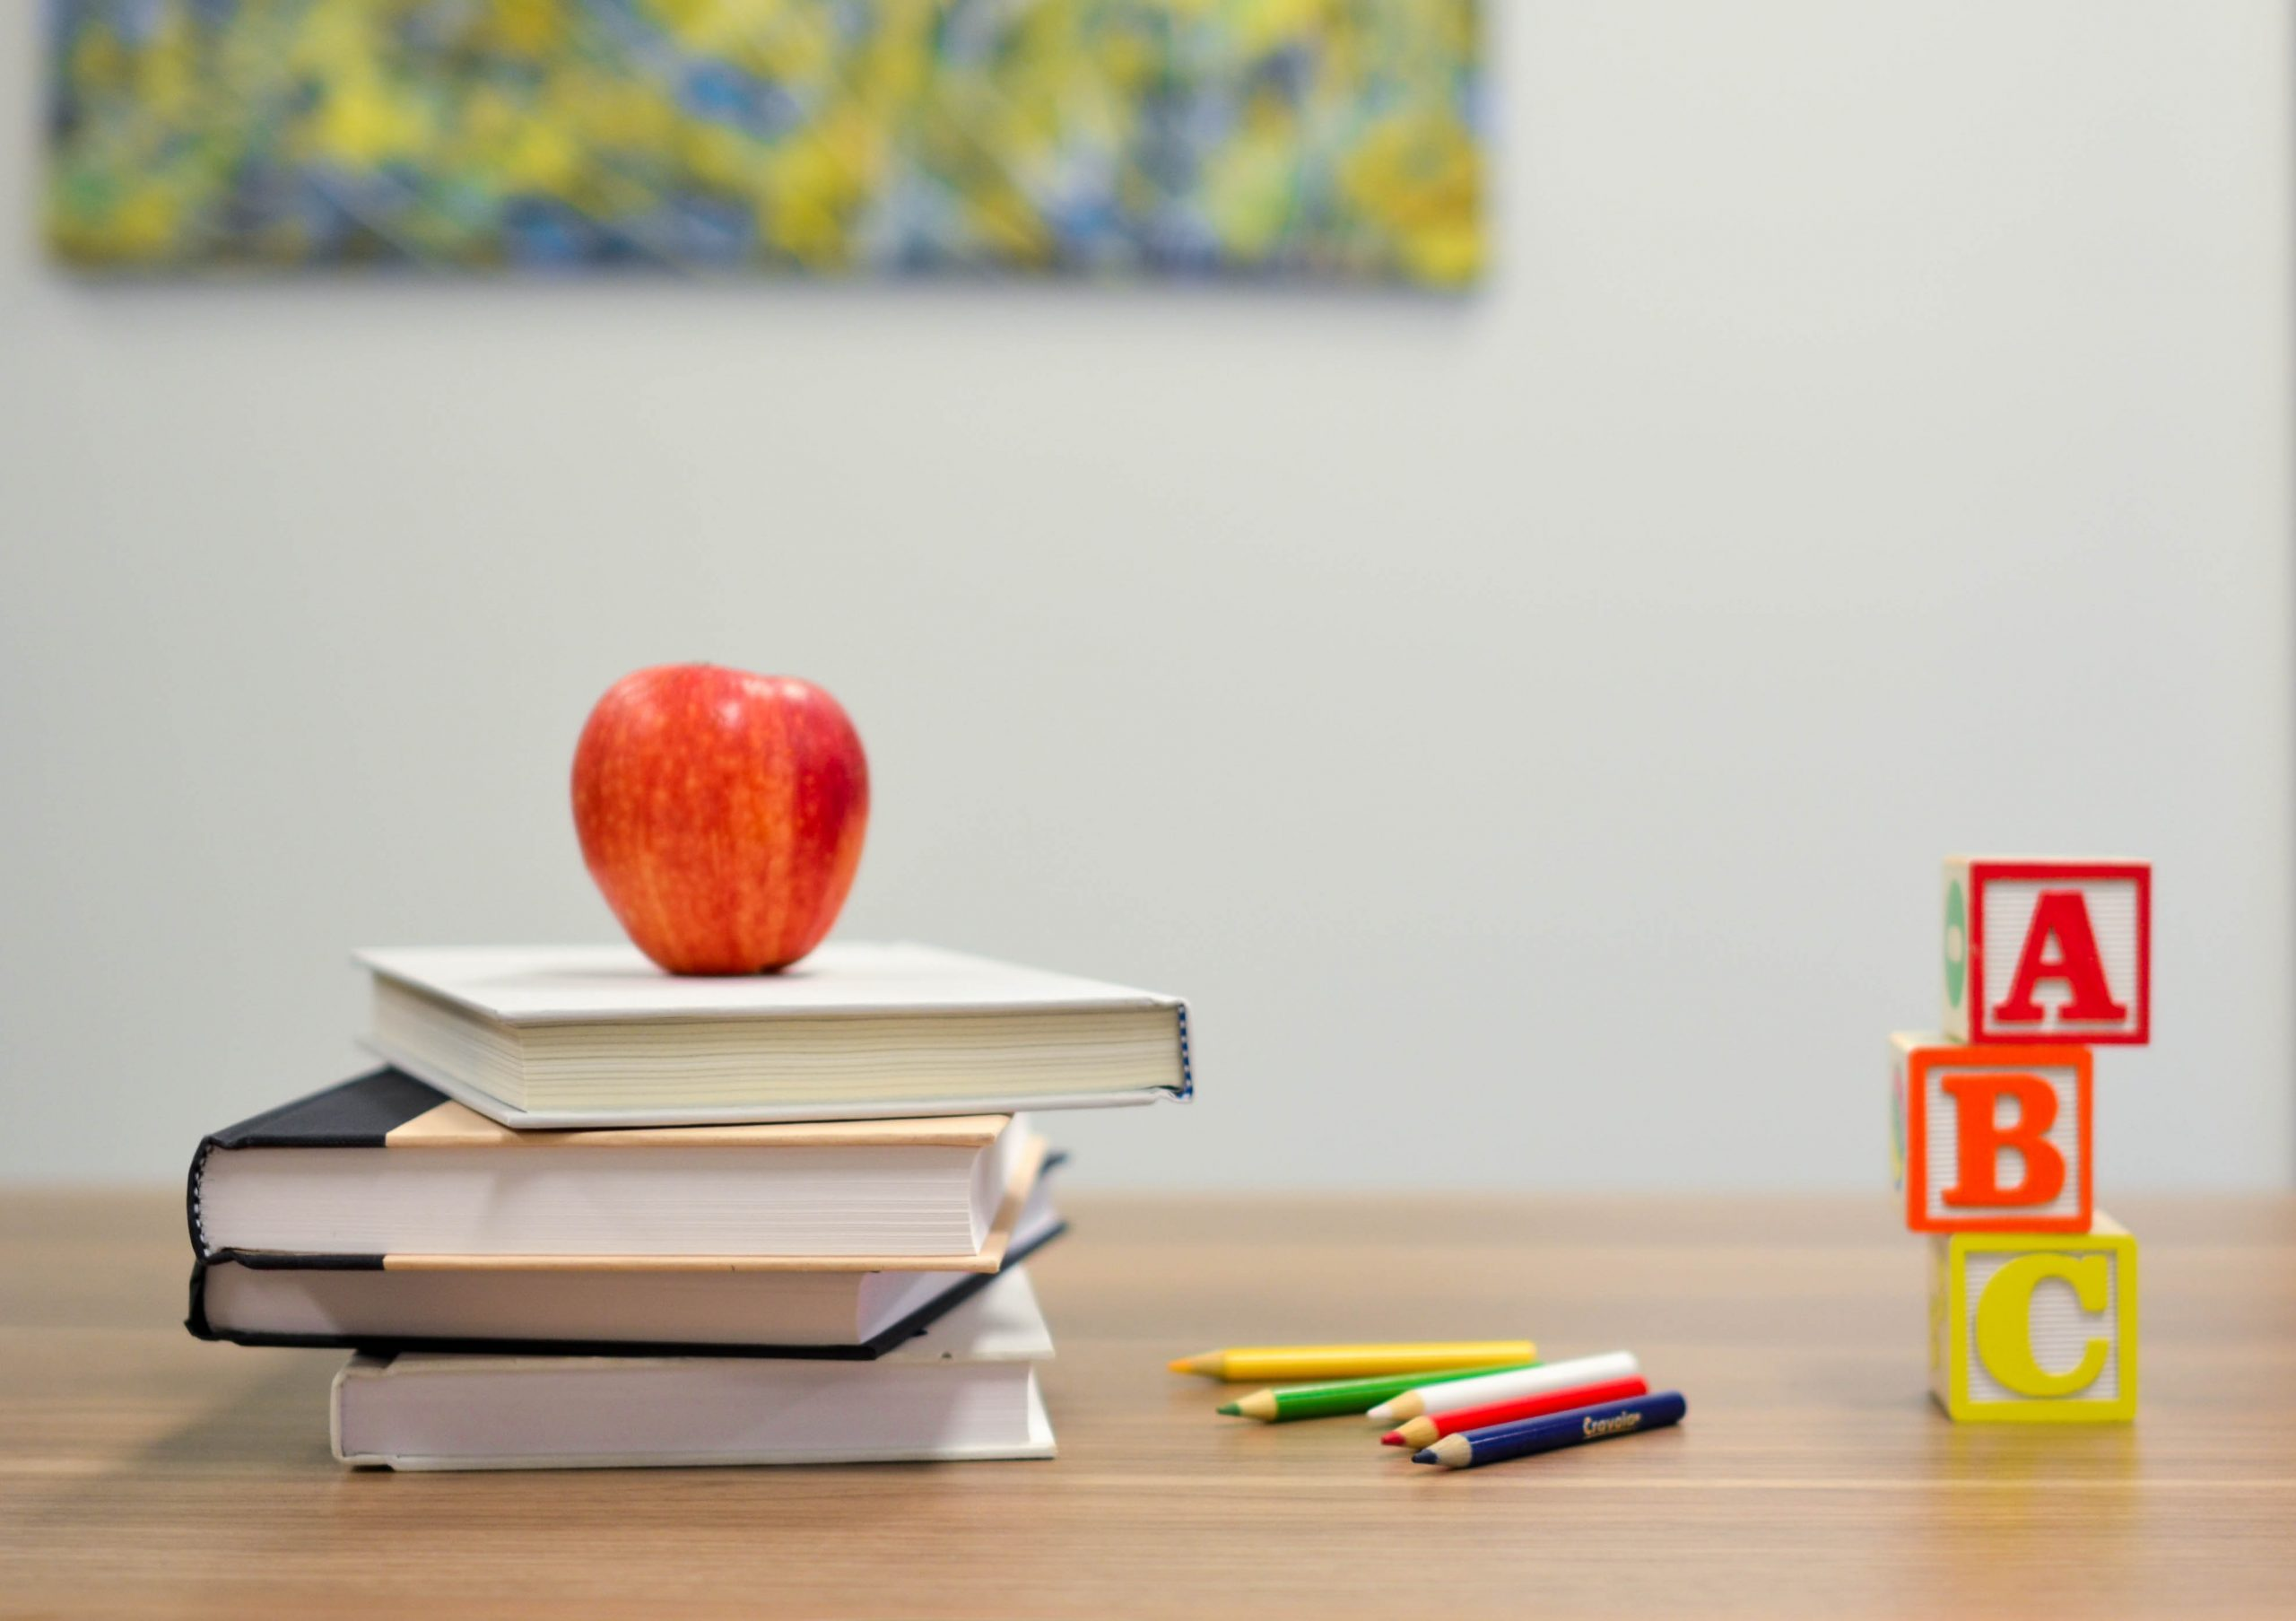 An image of a desk with a few books, an apple, and ABC blocks